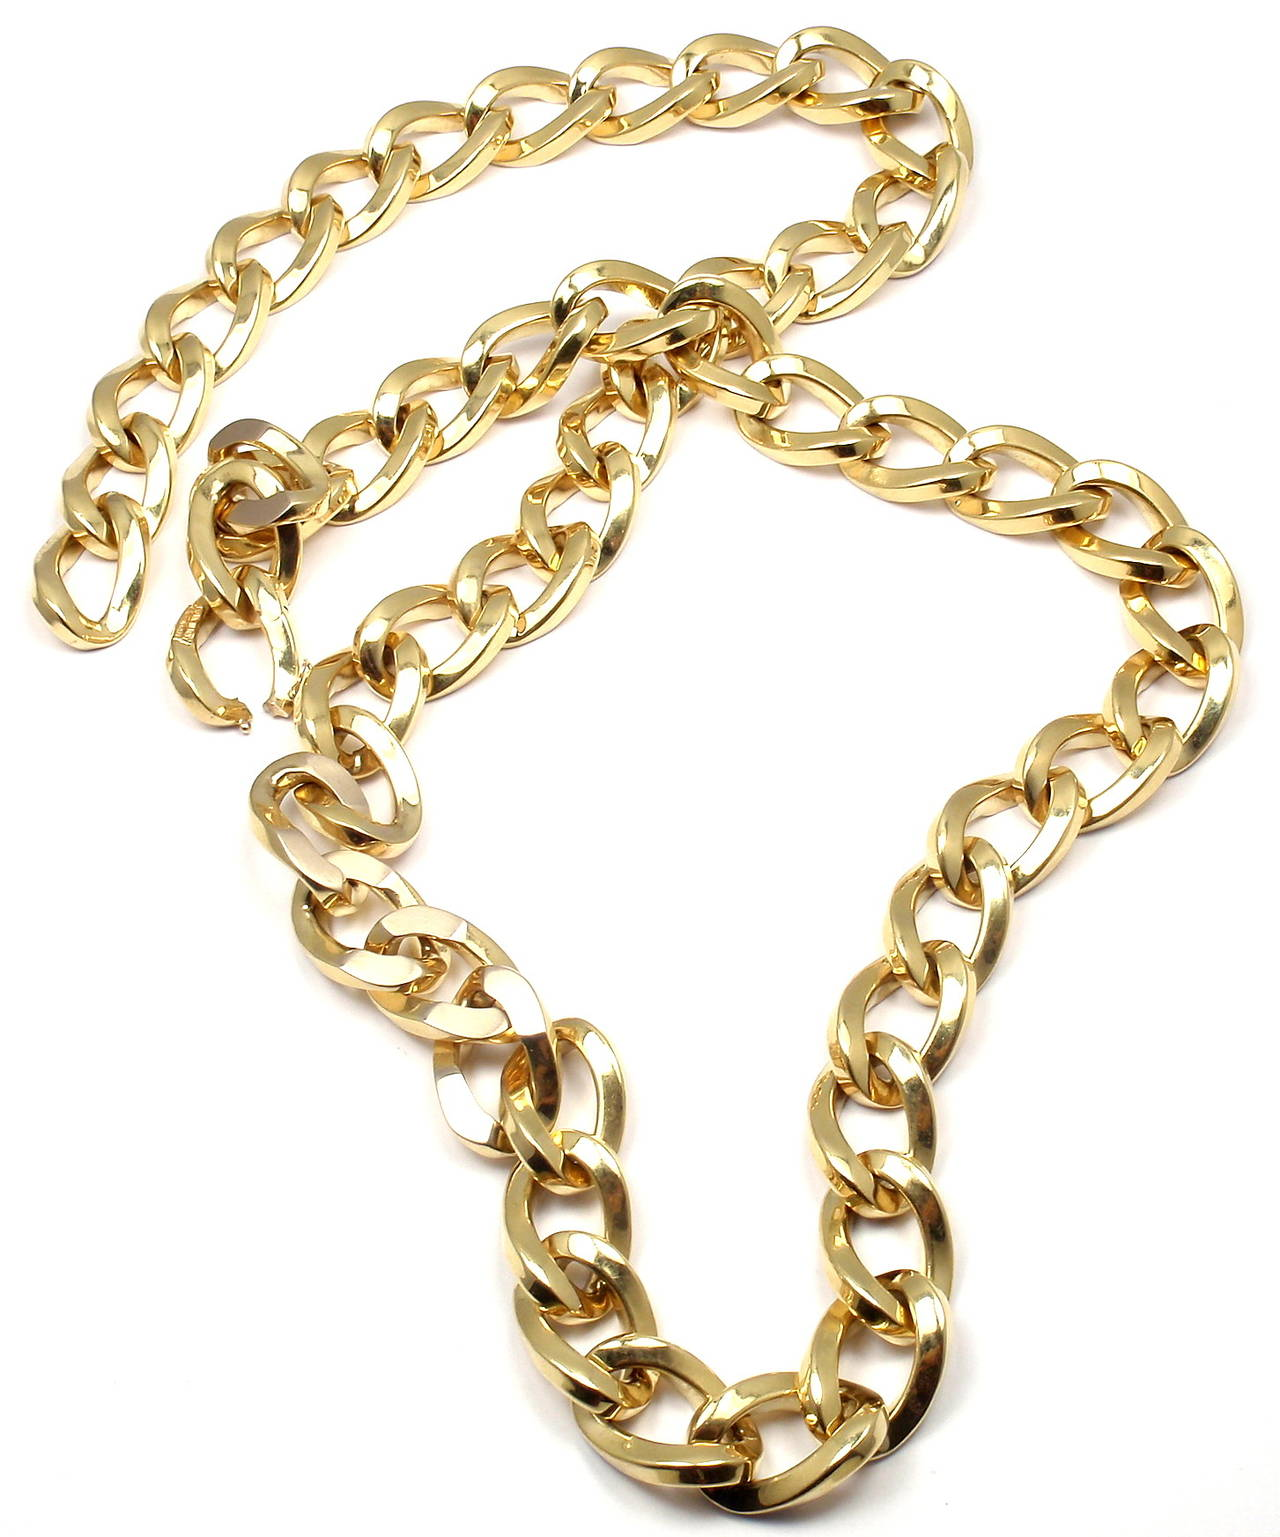 18k Yellow Gold Curb Link Chain Necklace by Bulgari.